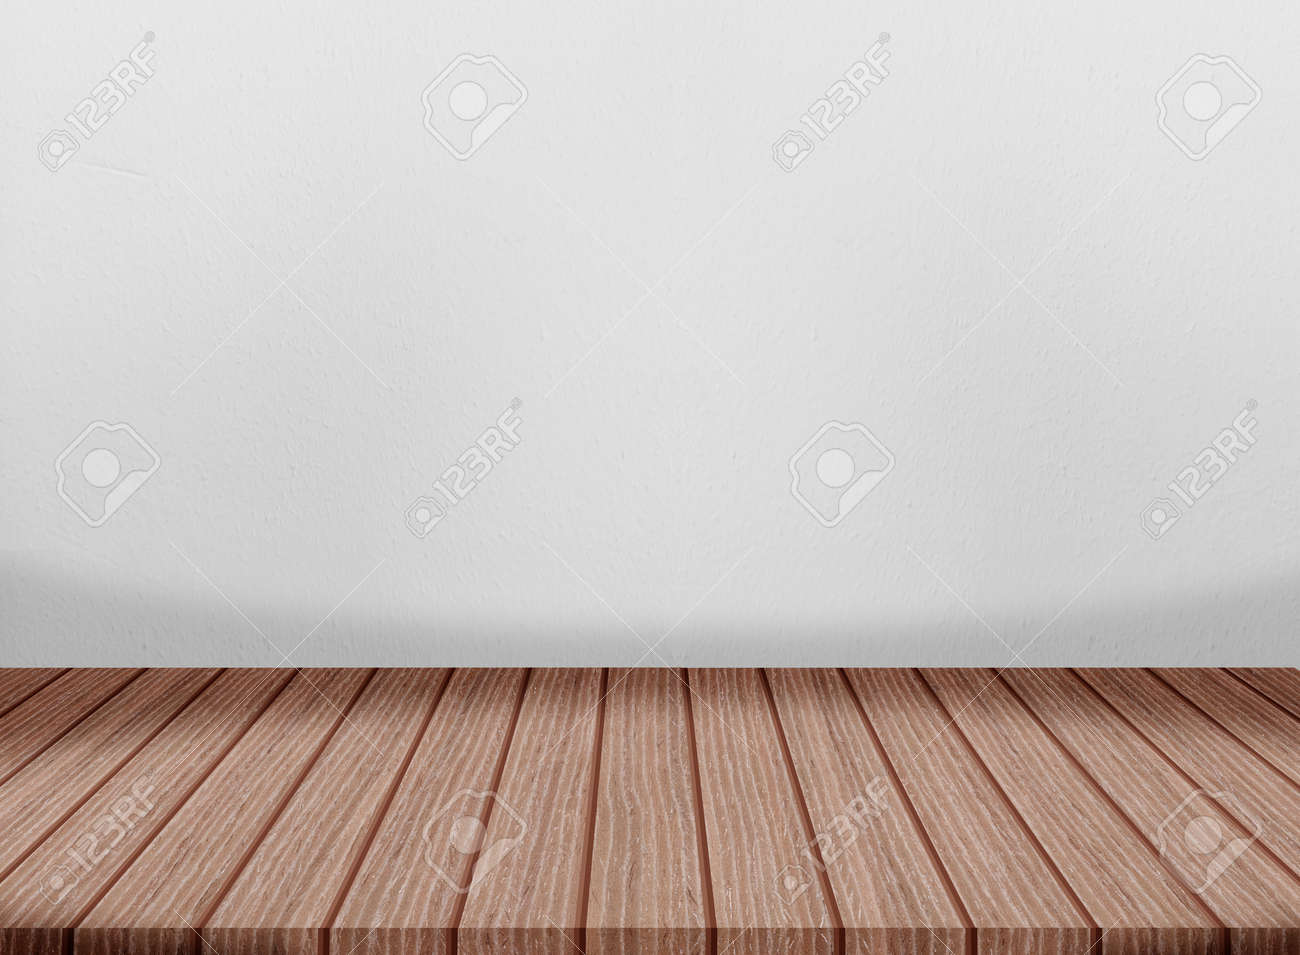 Wooden floor cement wall gray color smooth surface texture concrete material background detail architect construction - 167596574